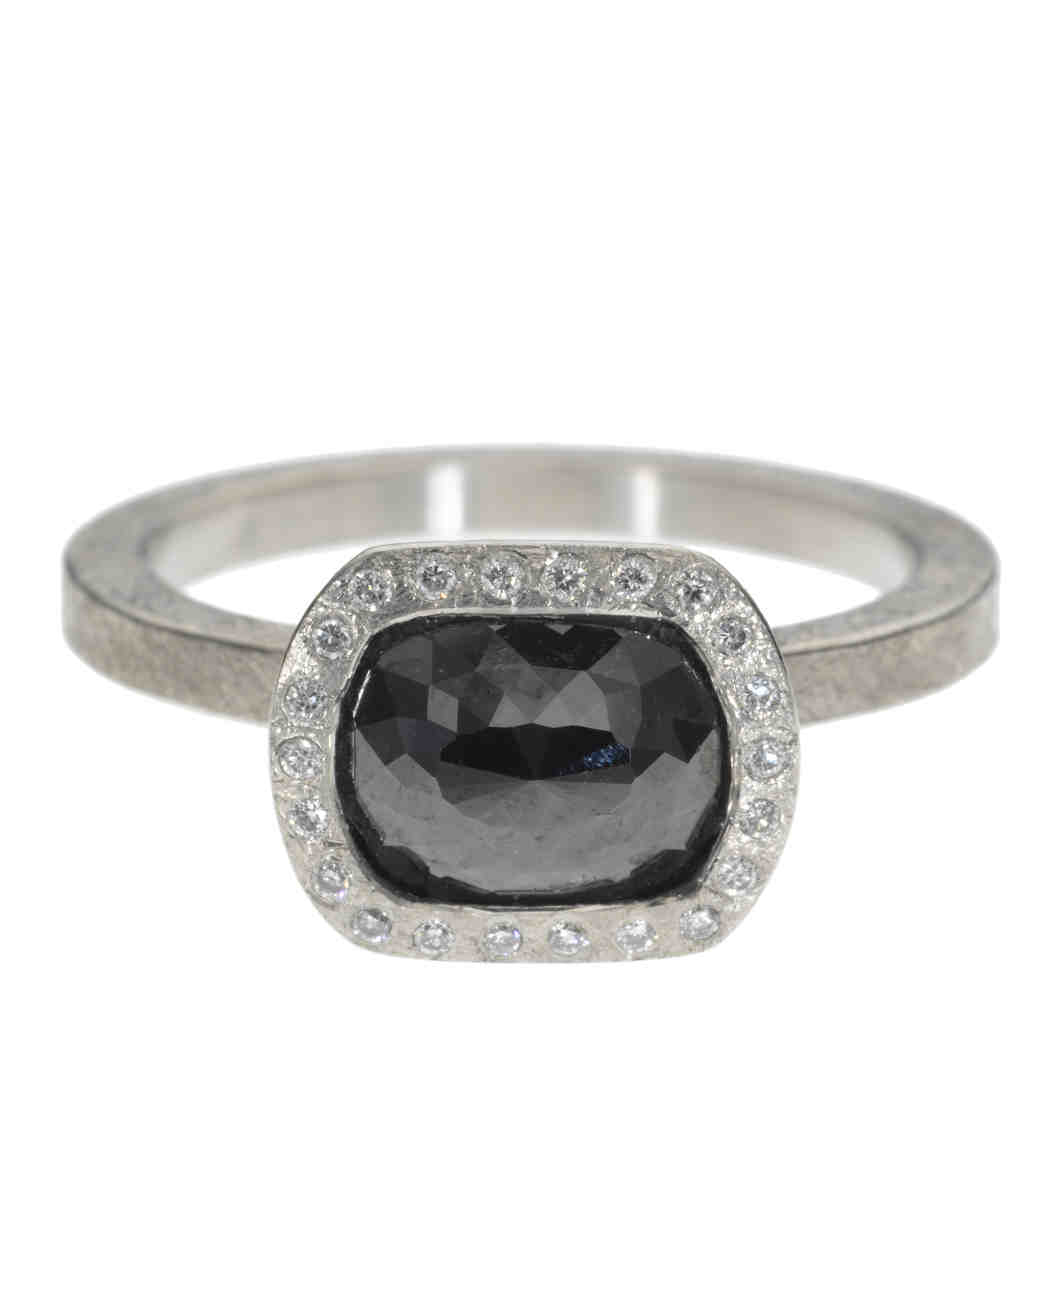 black-diamond-engagement-rings-todd-reed-3-0814.jpg